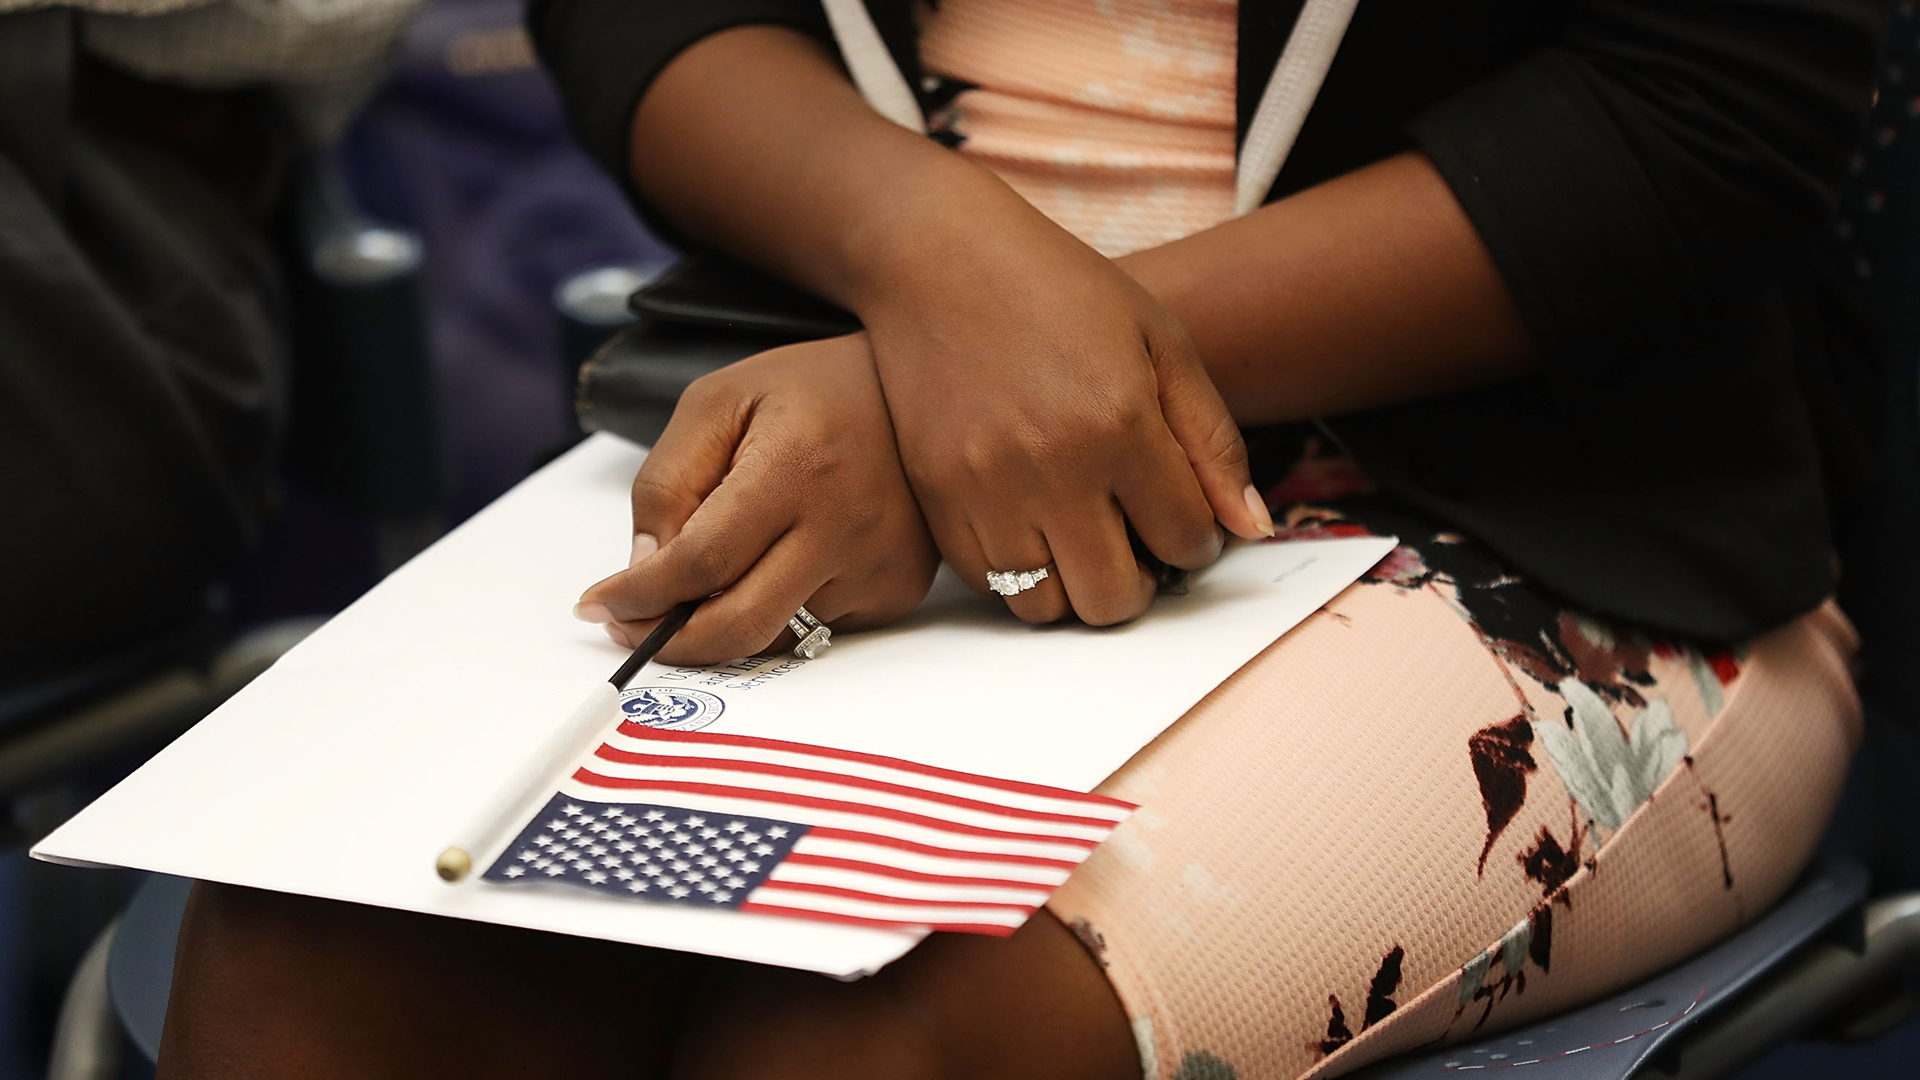 A woman holds an American flag during a ceremony to become an American citizen during a U.S. Citizenship and Immigration Services naturalization ceremony at the Miami field Office on Aug. 17, 2018, in Miami, Florida. (Credit: Joe Raedle/Getty Images)